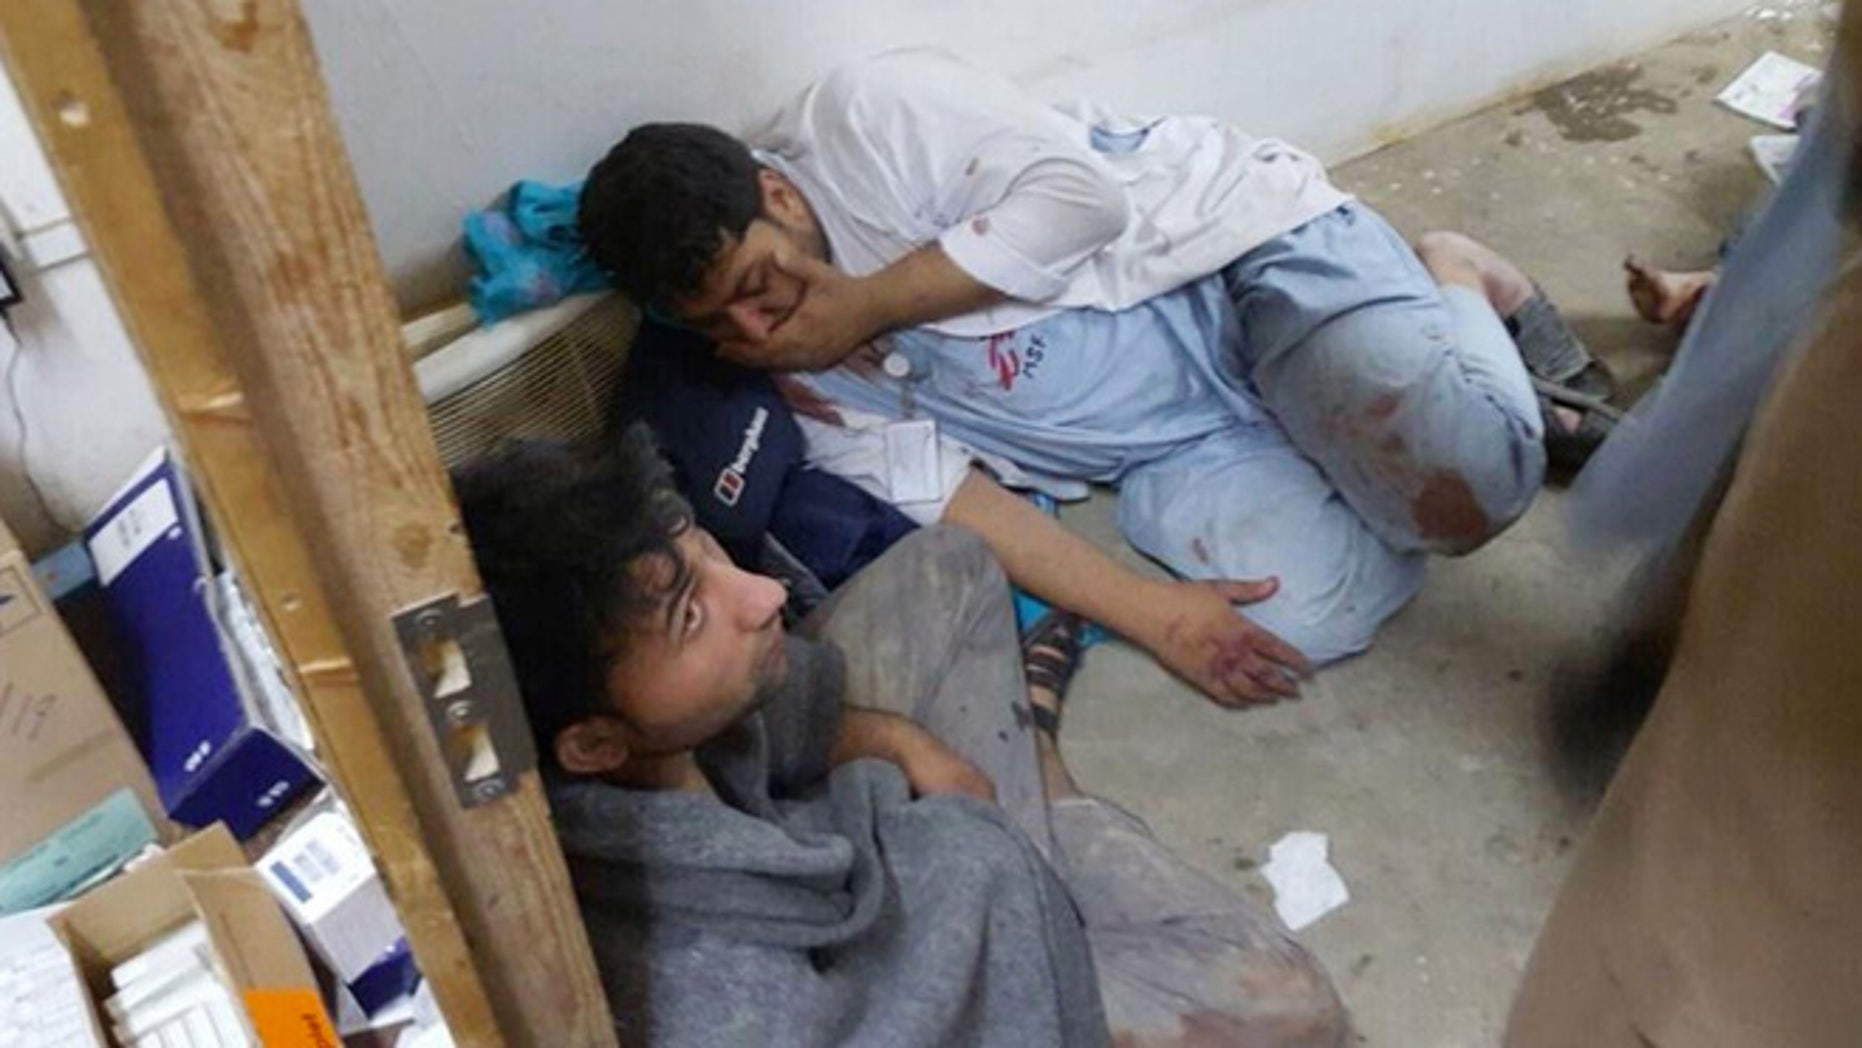 Oct. 3, 2015: Injured Doctors Without Borders staff are seen after explosions near their hospital in the northern Afghan city of Kunduz.